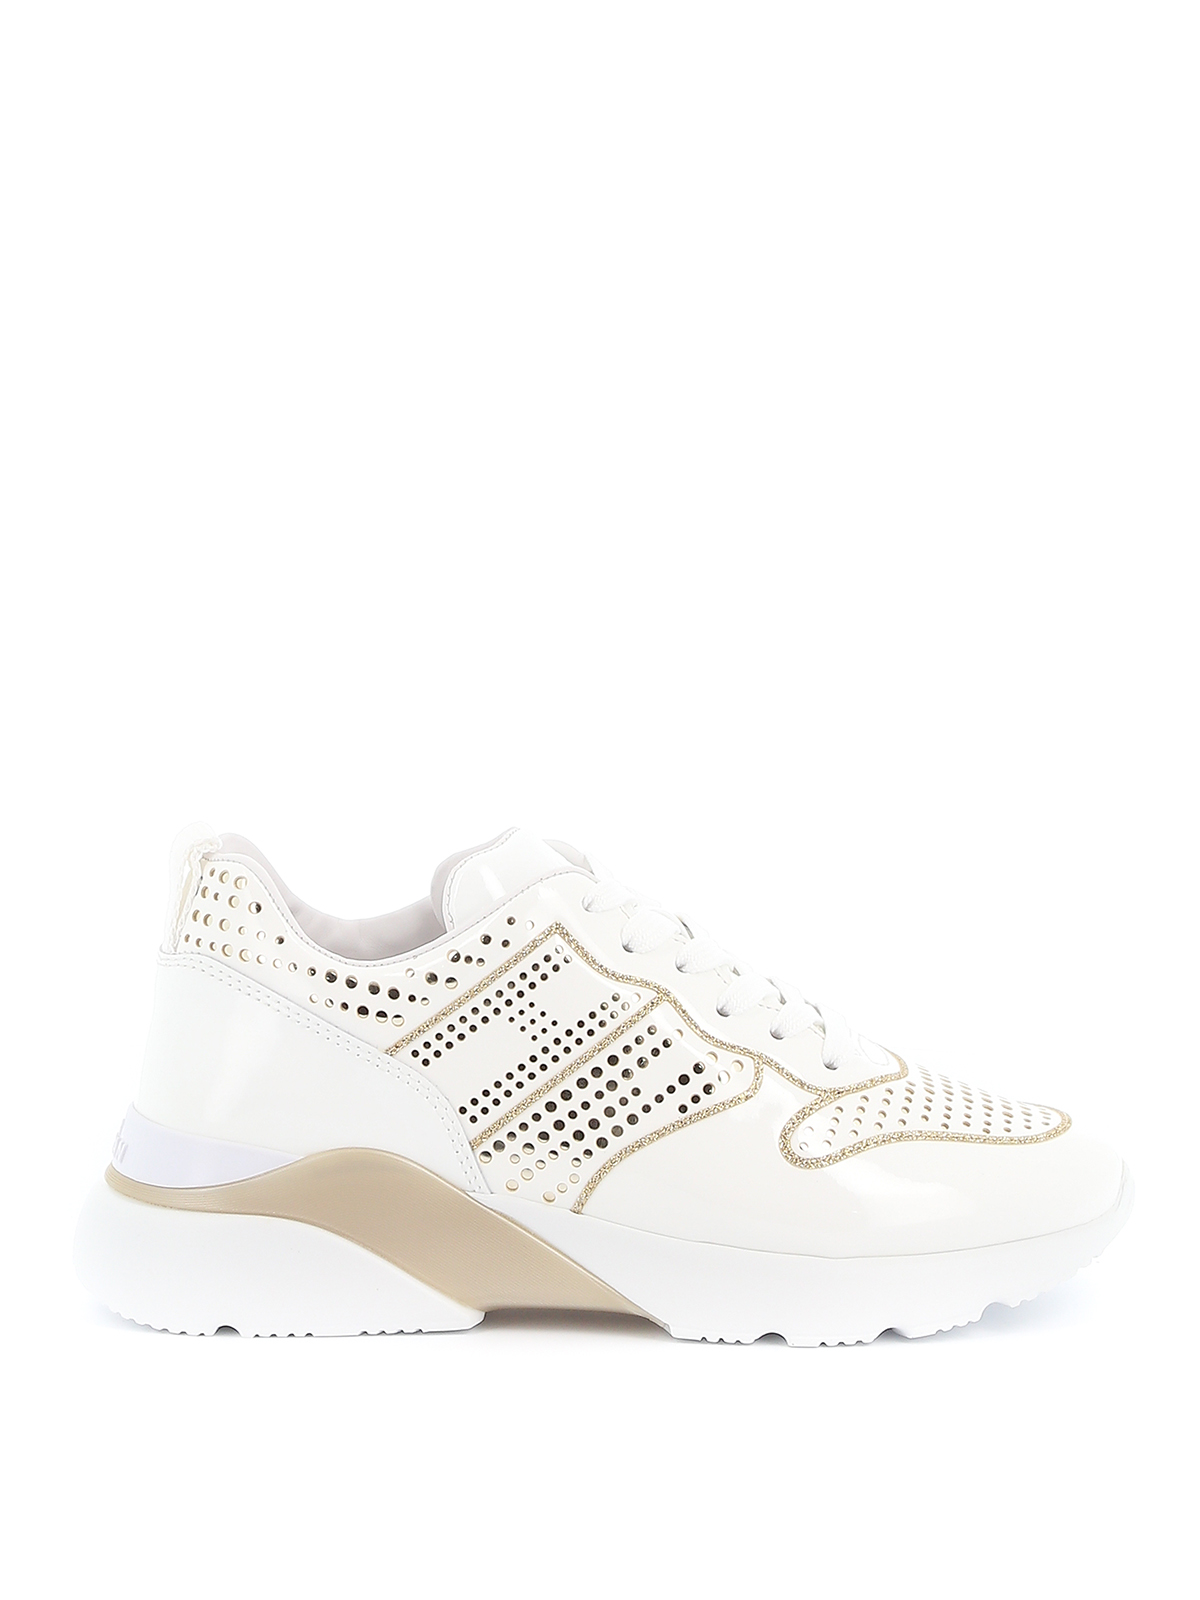 Hogan Active One Laser Cut Sneakers In White